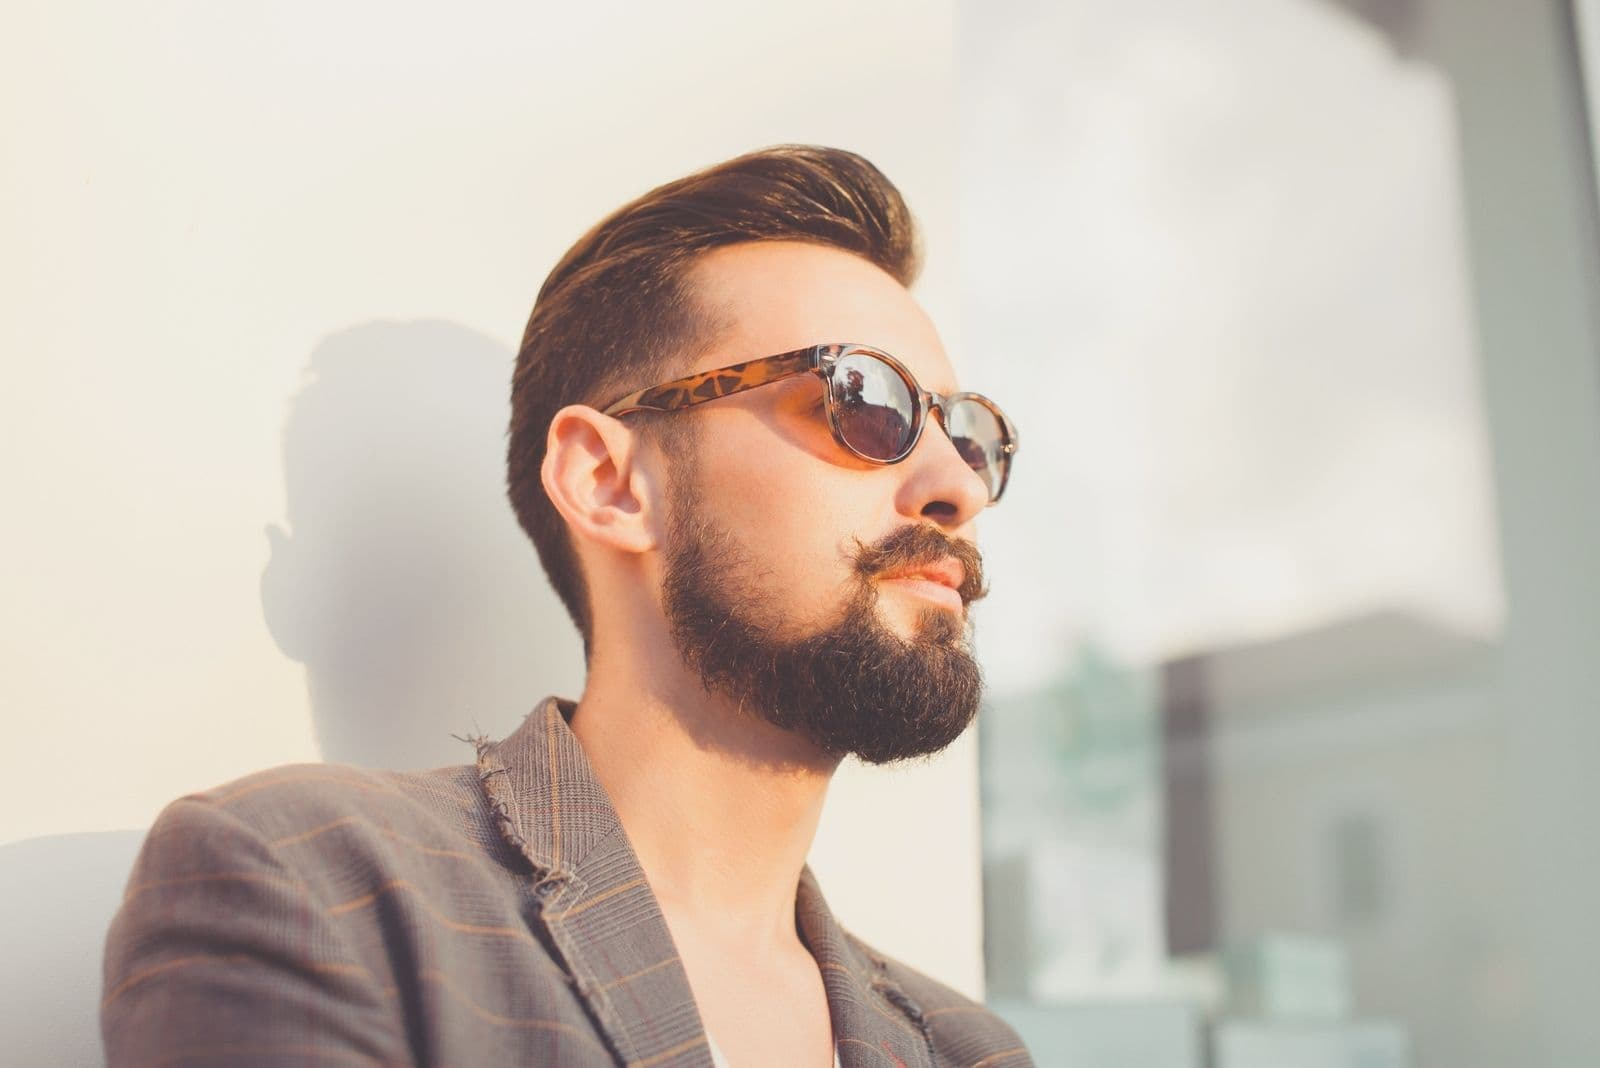 young bearded man standing outdoors in fashion